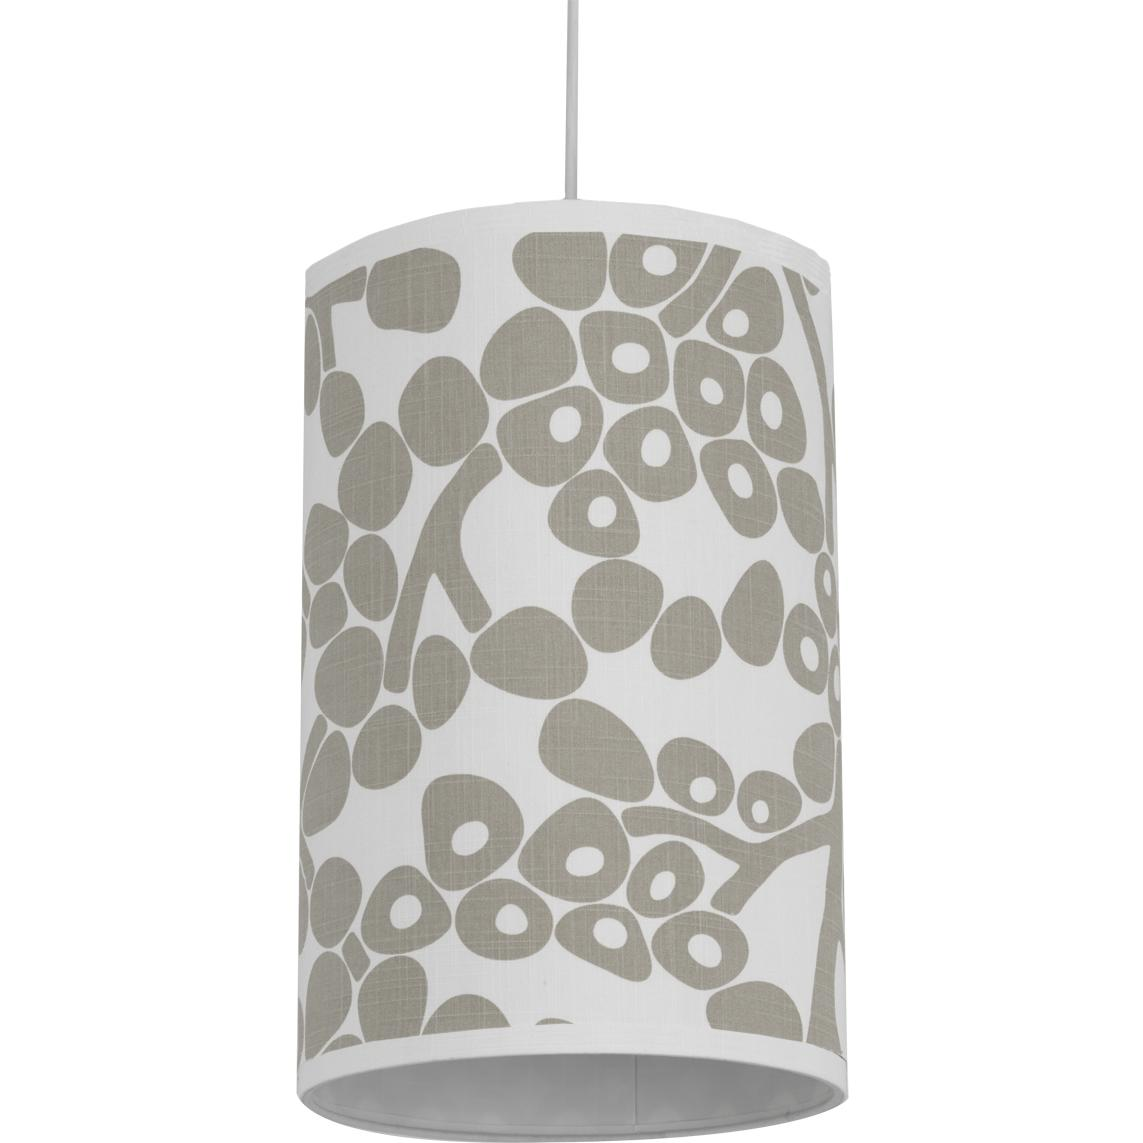 Oilo Cylinder Hanging Lamp - Modern Berries Taupe